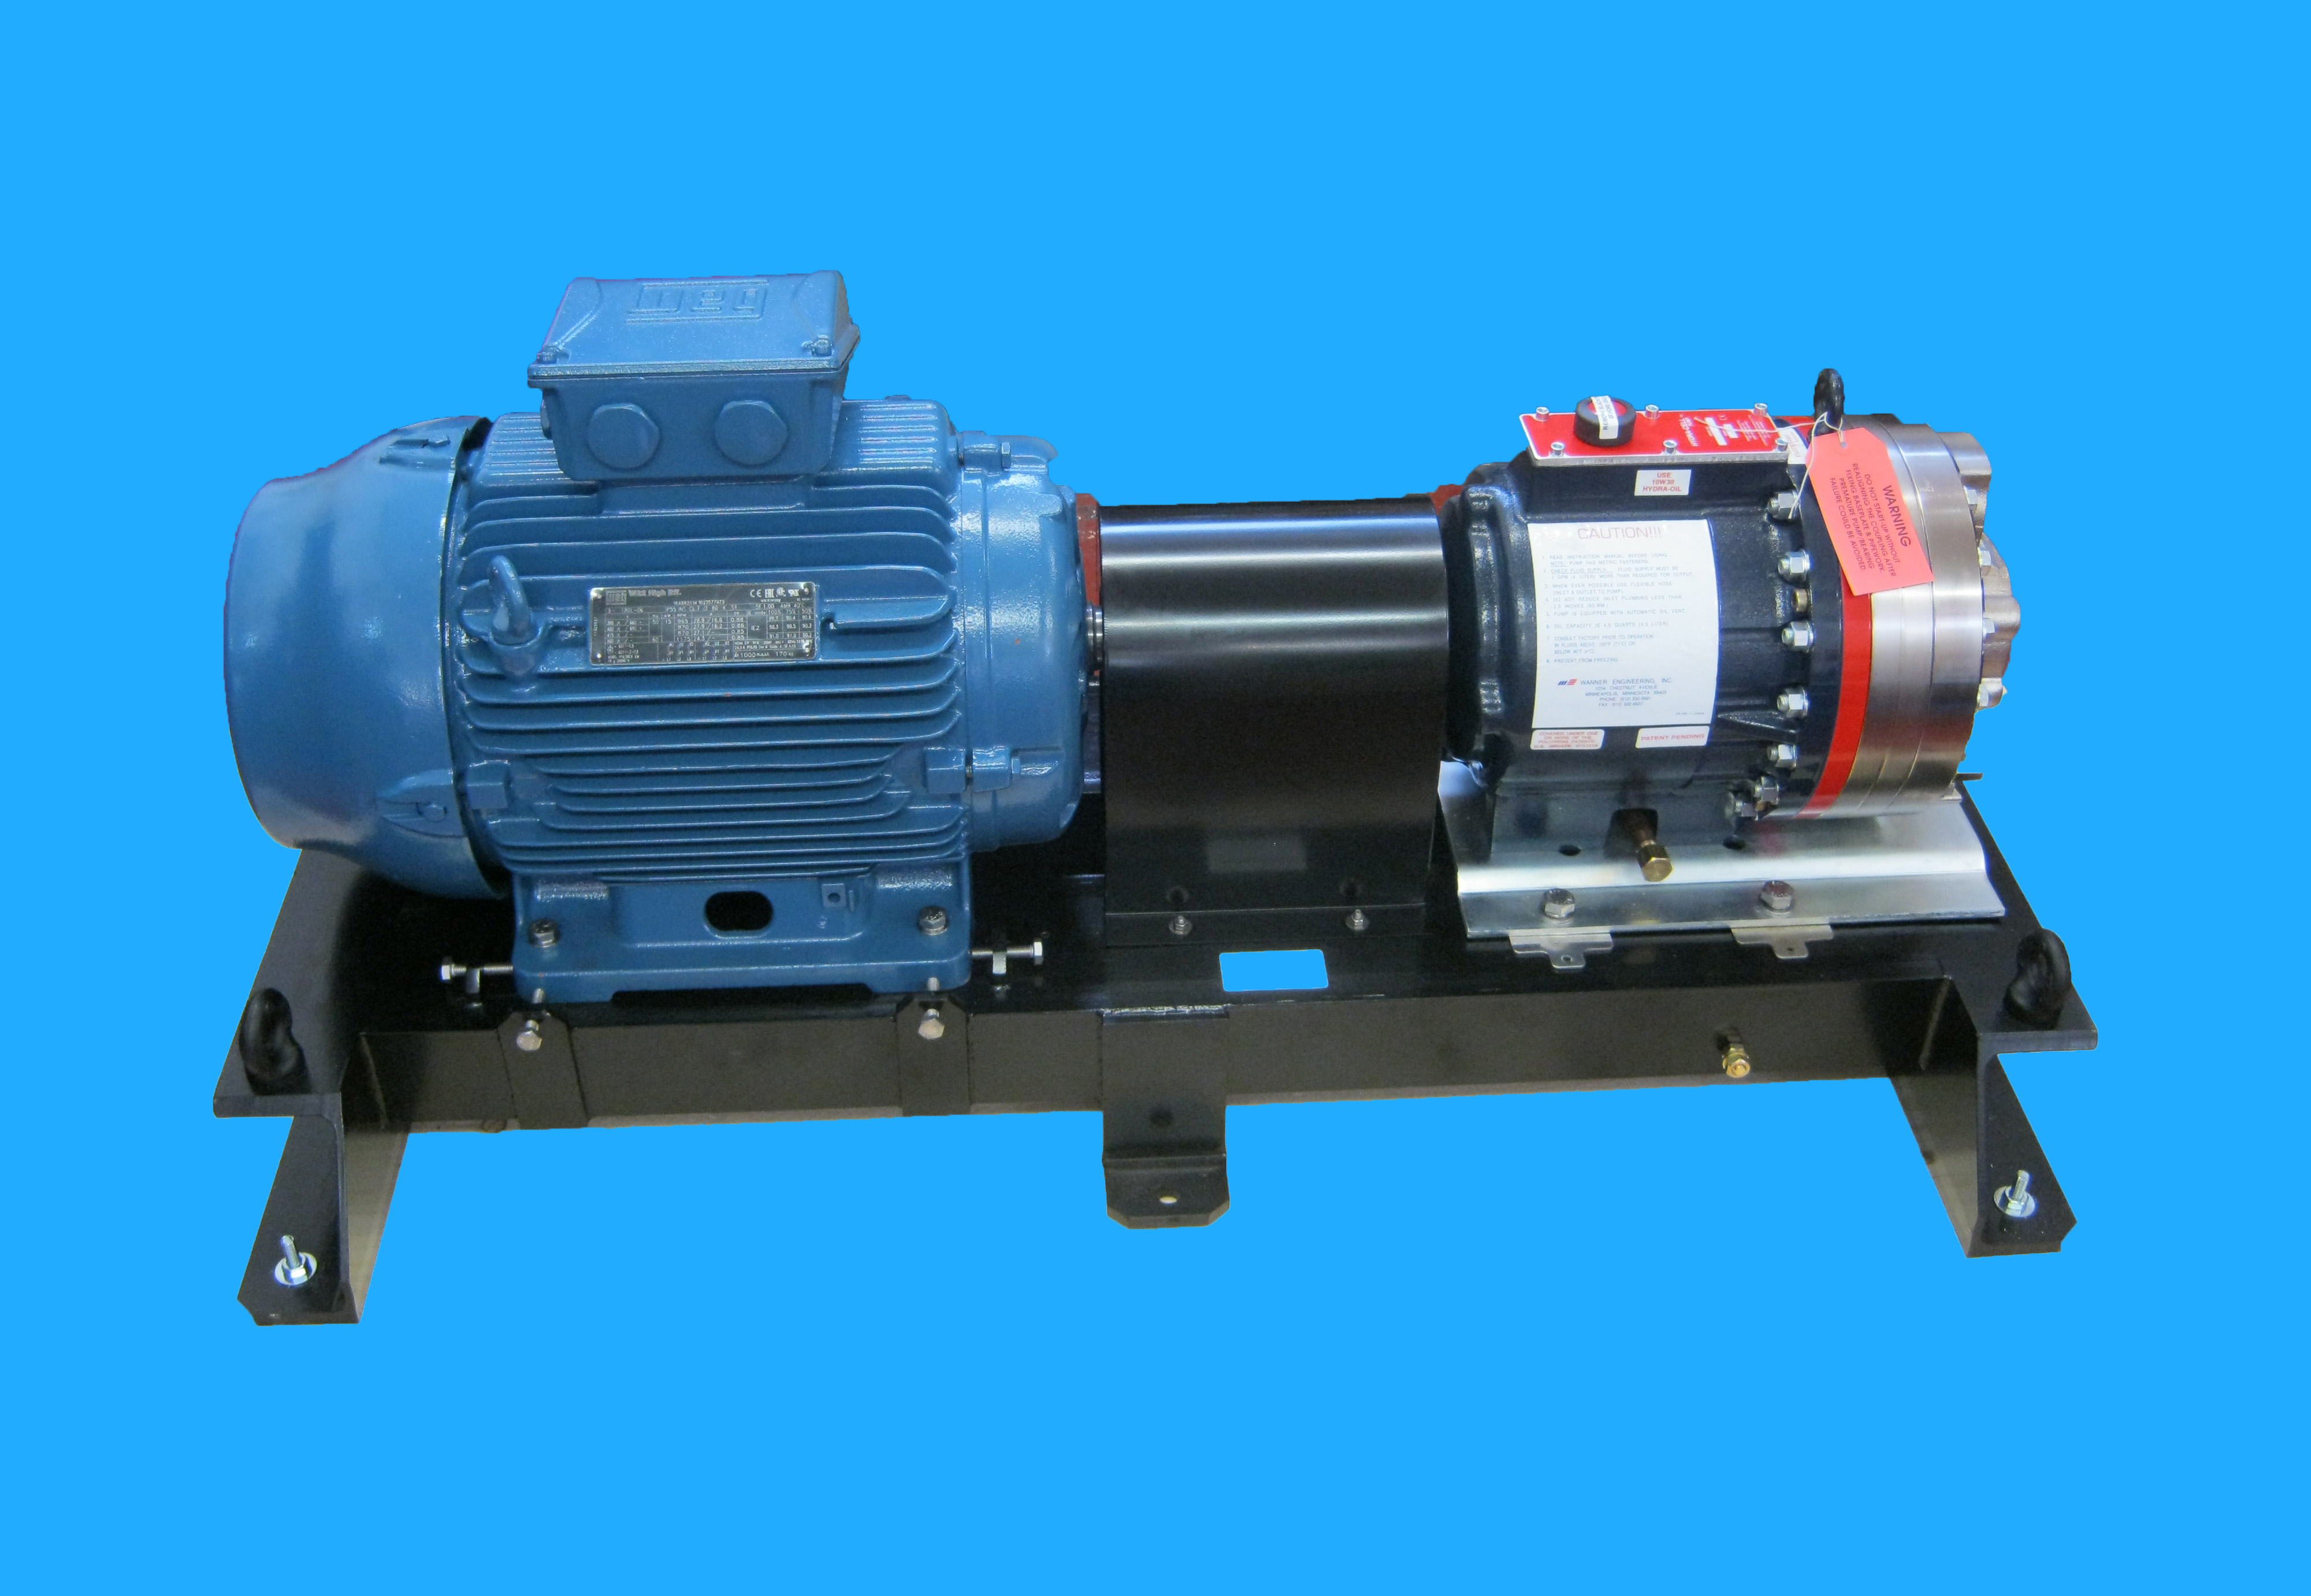 High Pressure Flow Iron : Pumps used in the uk for pressue boosting applications